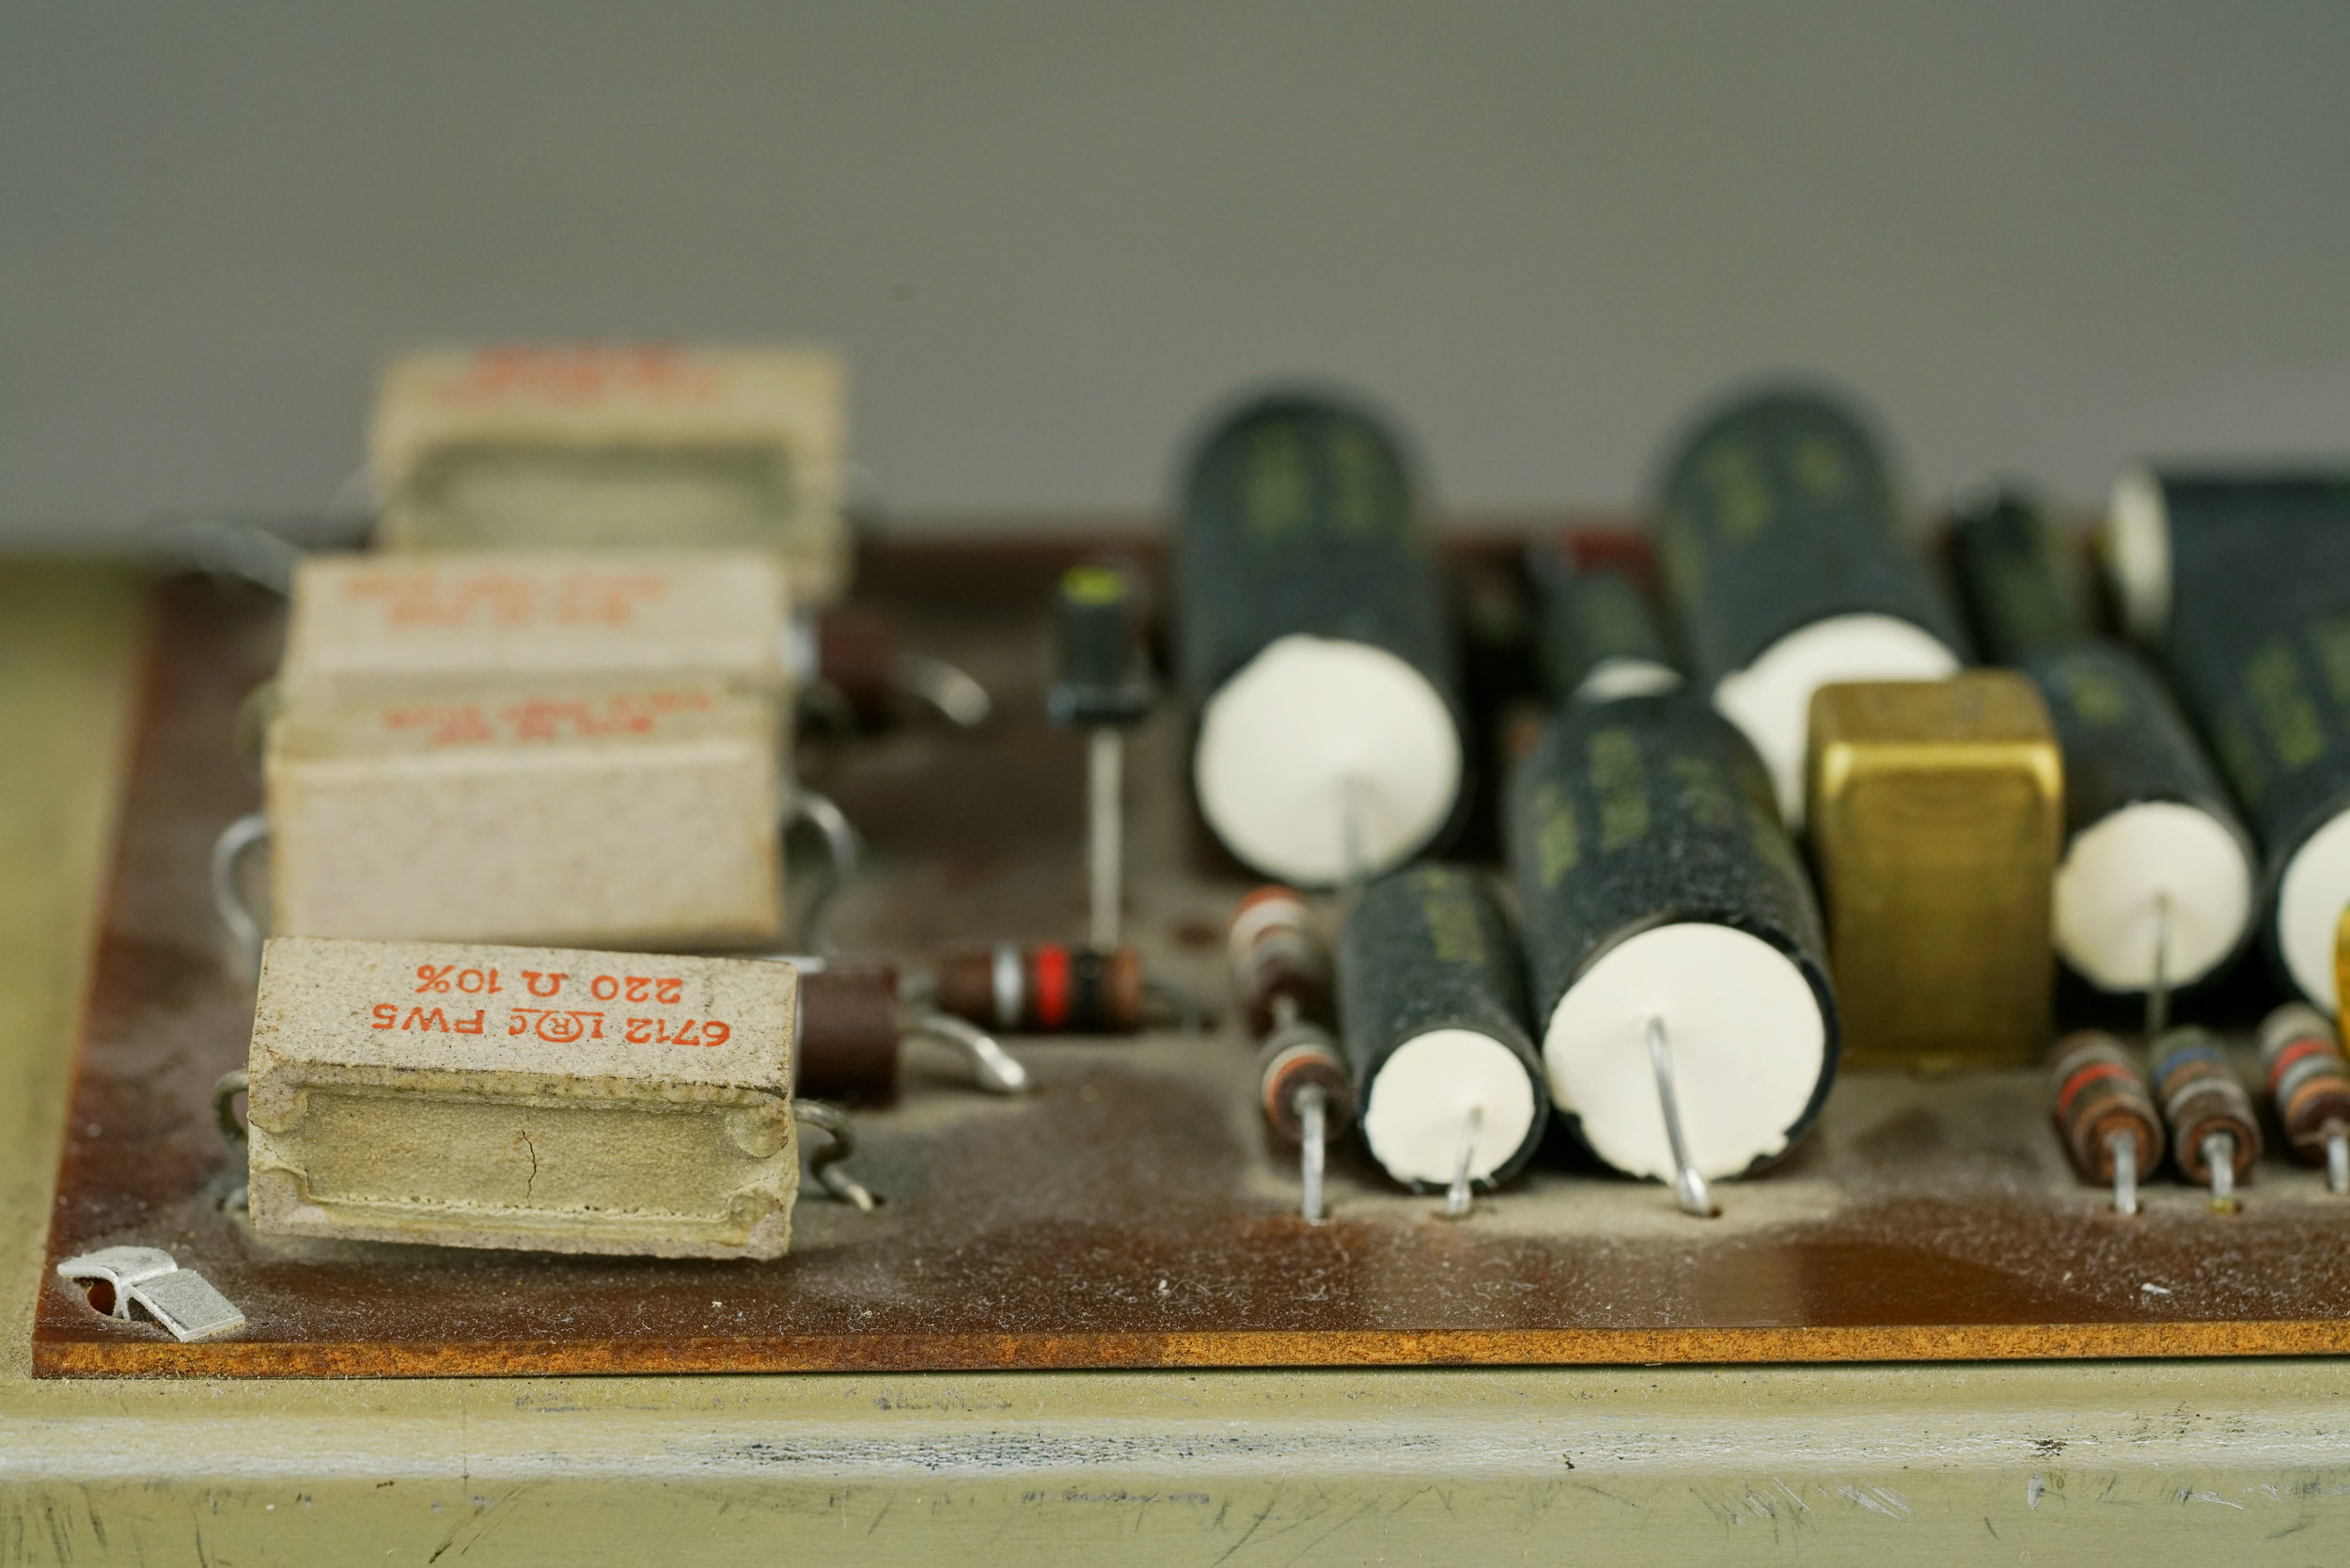 These high-wattage resistors, found in a Wurlitzer 140b amplifier, are part of the power transistor biasing circuit.